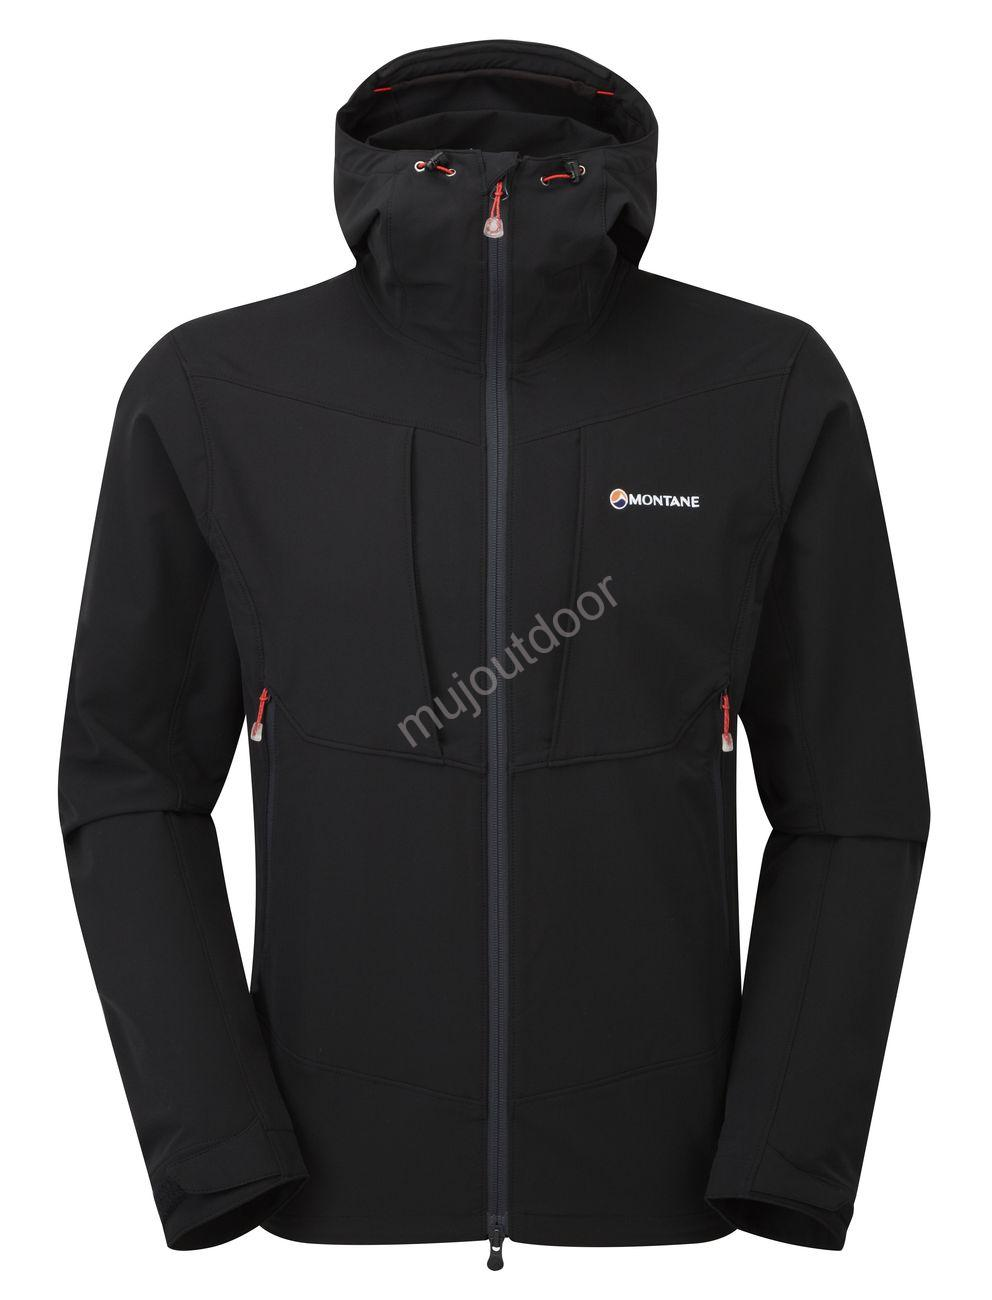 Montane bunda Dyno Stretch, Black